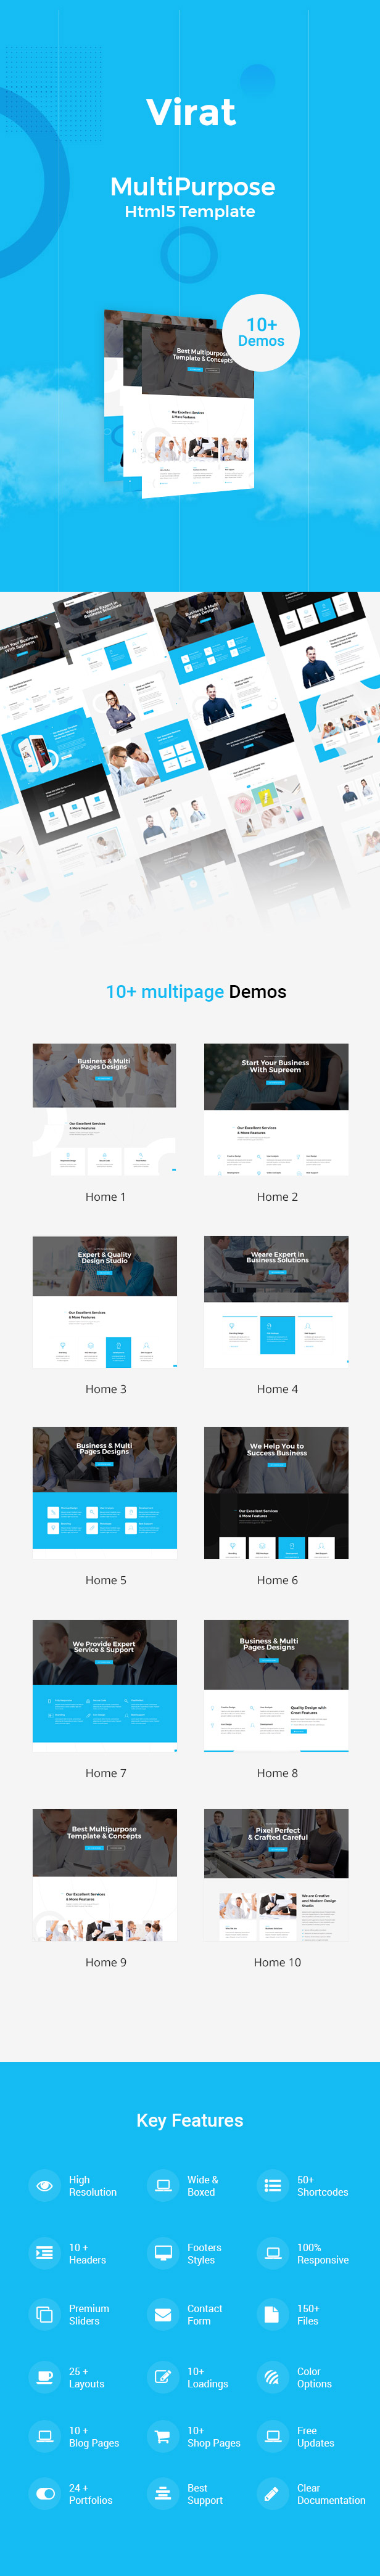 Virat- Responsive Multi-Purpose HTML5 Template